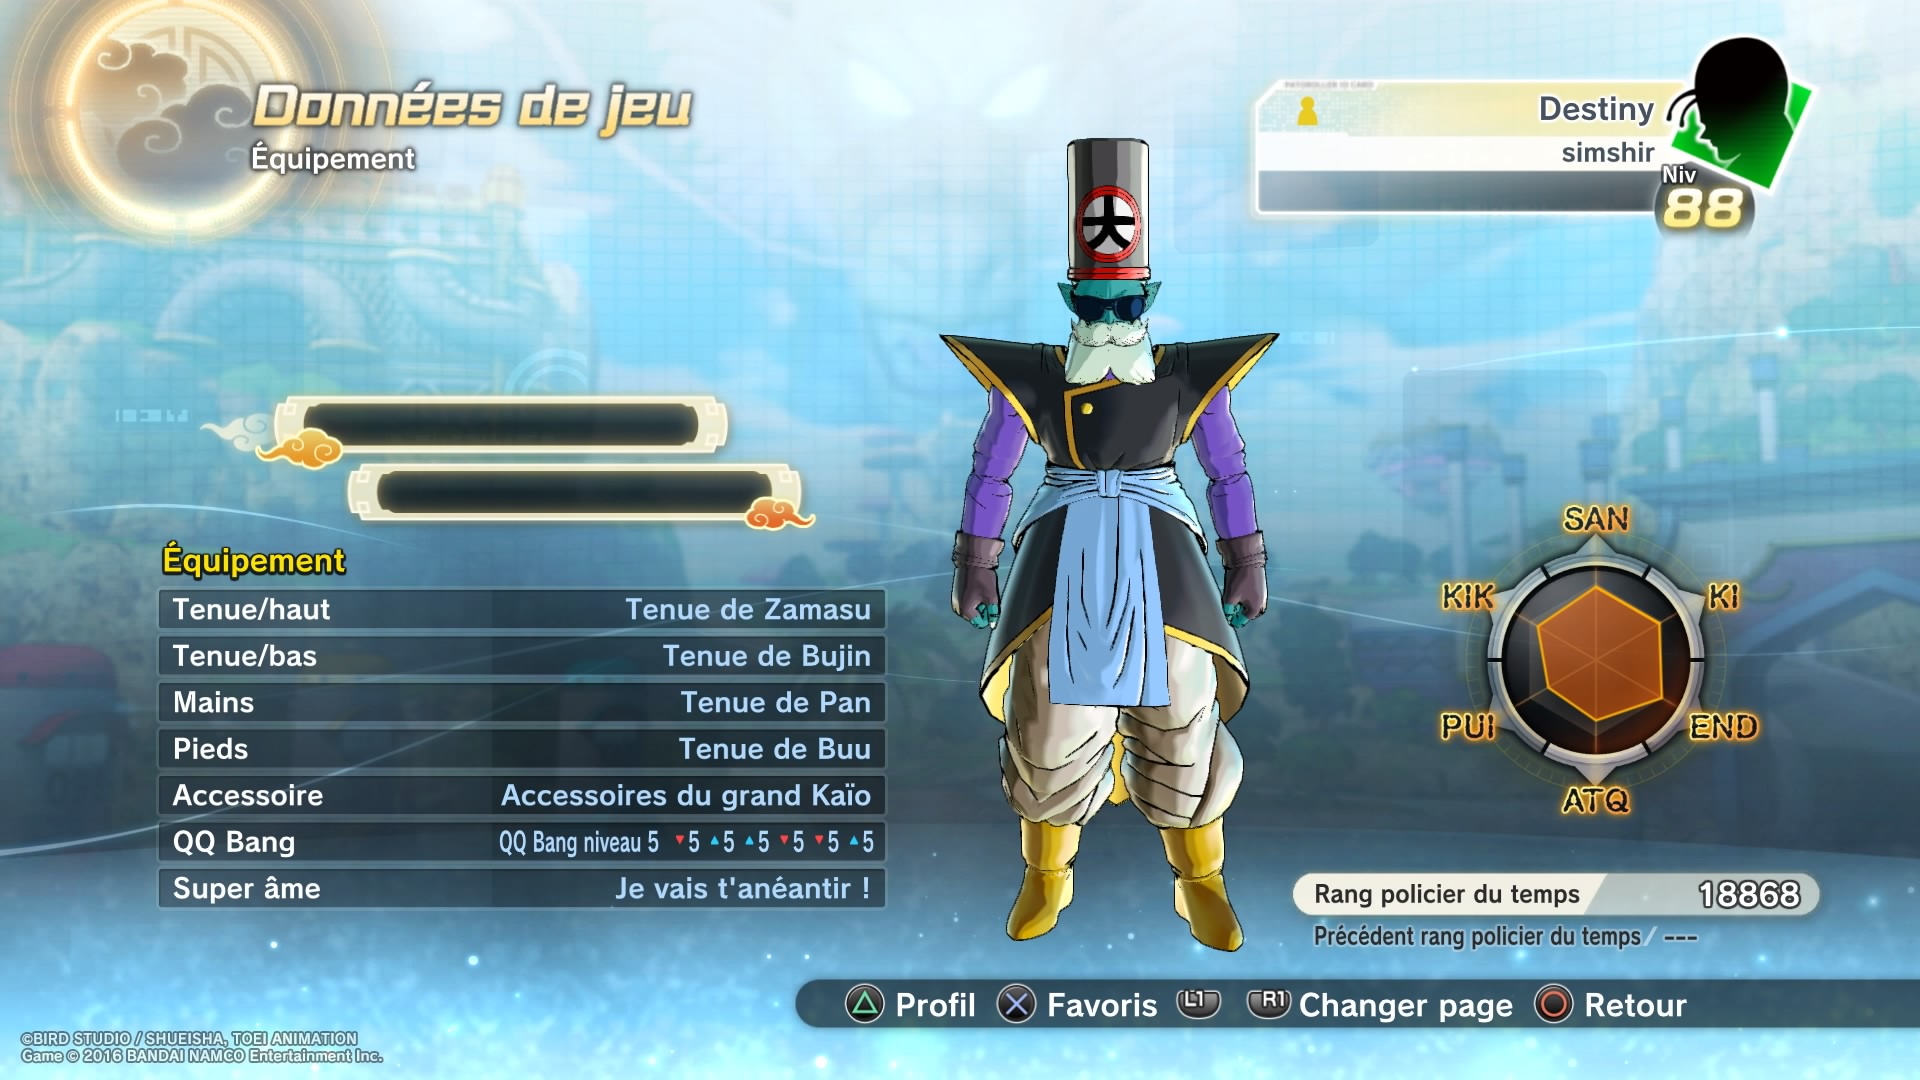 Tenue De Zamasu Dispo Sur Le Forum Dragon Ball Xenoverse 2 09 03